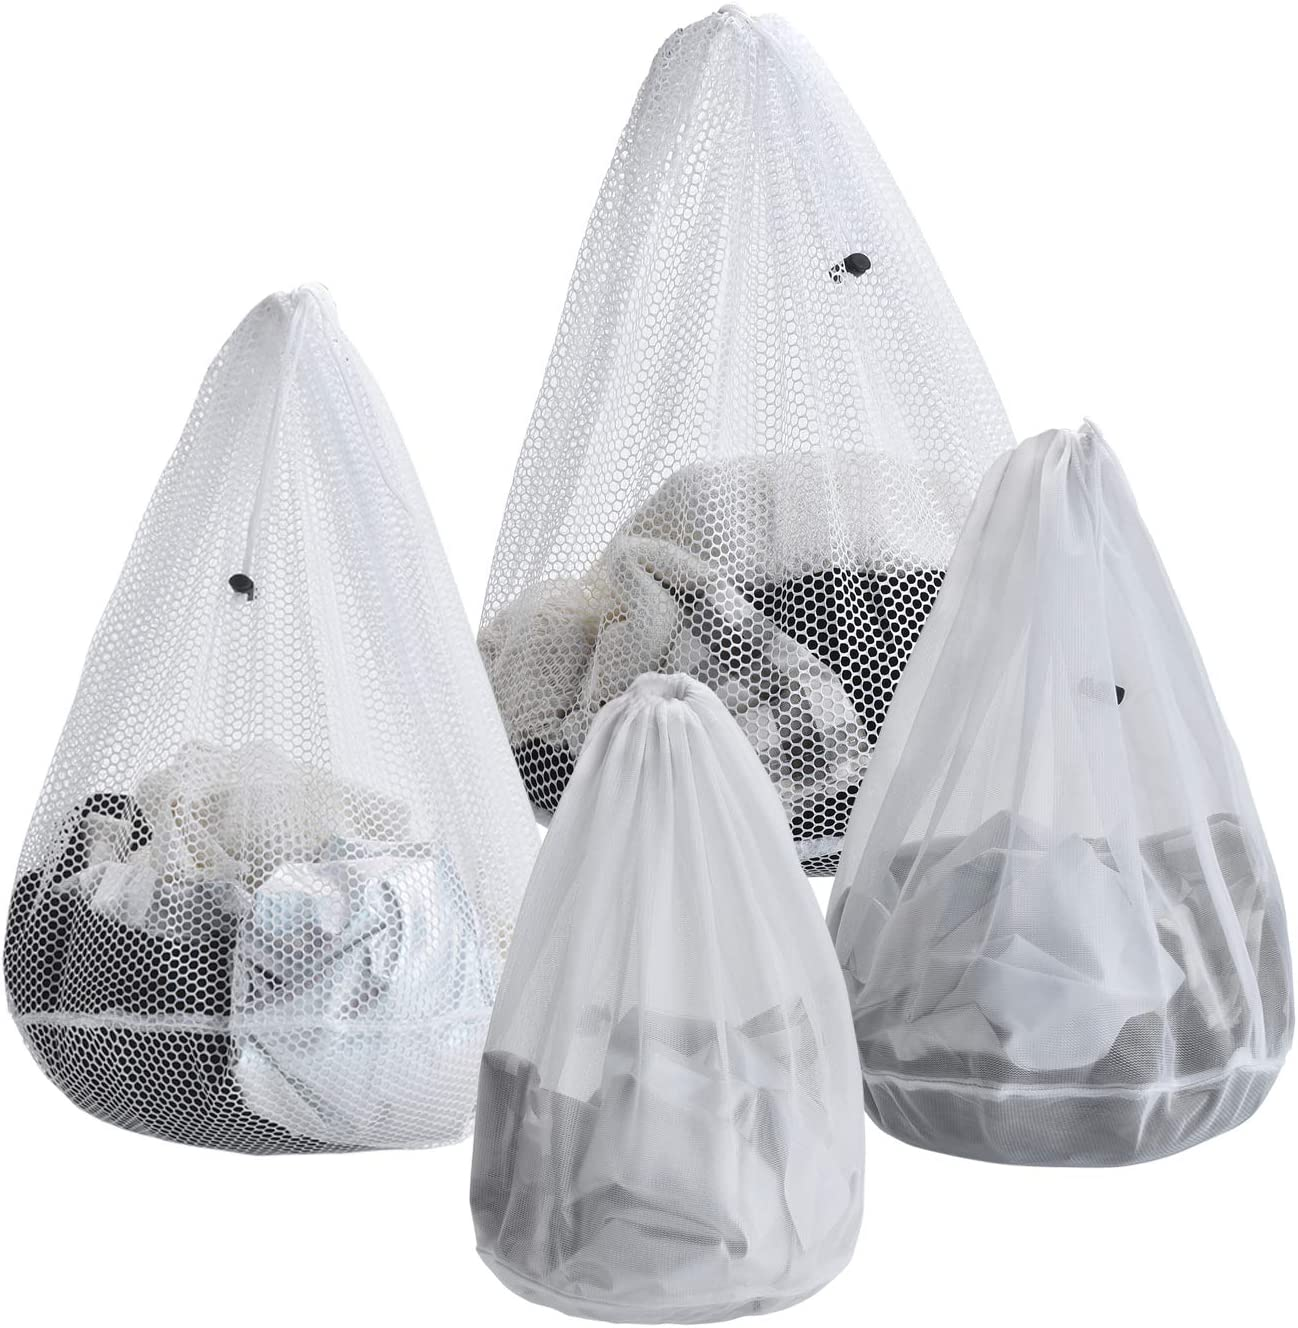 ARZASGO Mesh Laundry Bags, 4 Pack Heavy Duty Drawstring Laundry Washing Bags for Delicates, Garments, Lingerie, Socks, Bras and Baby Clothes (Coarse&Fine Mesh)